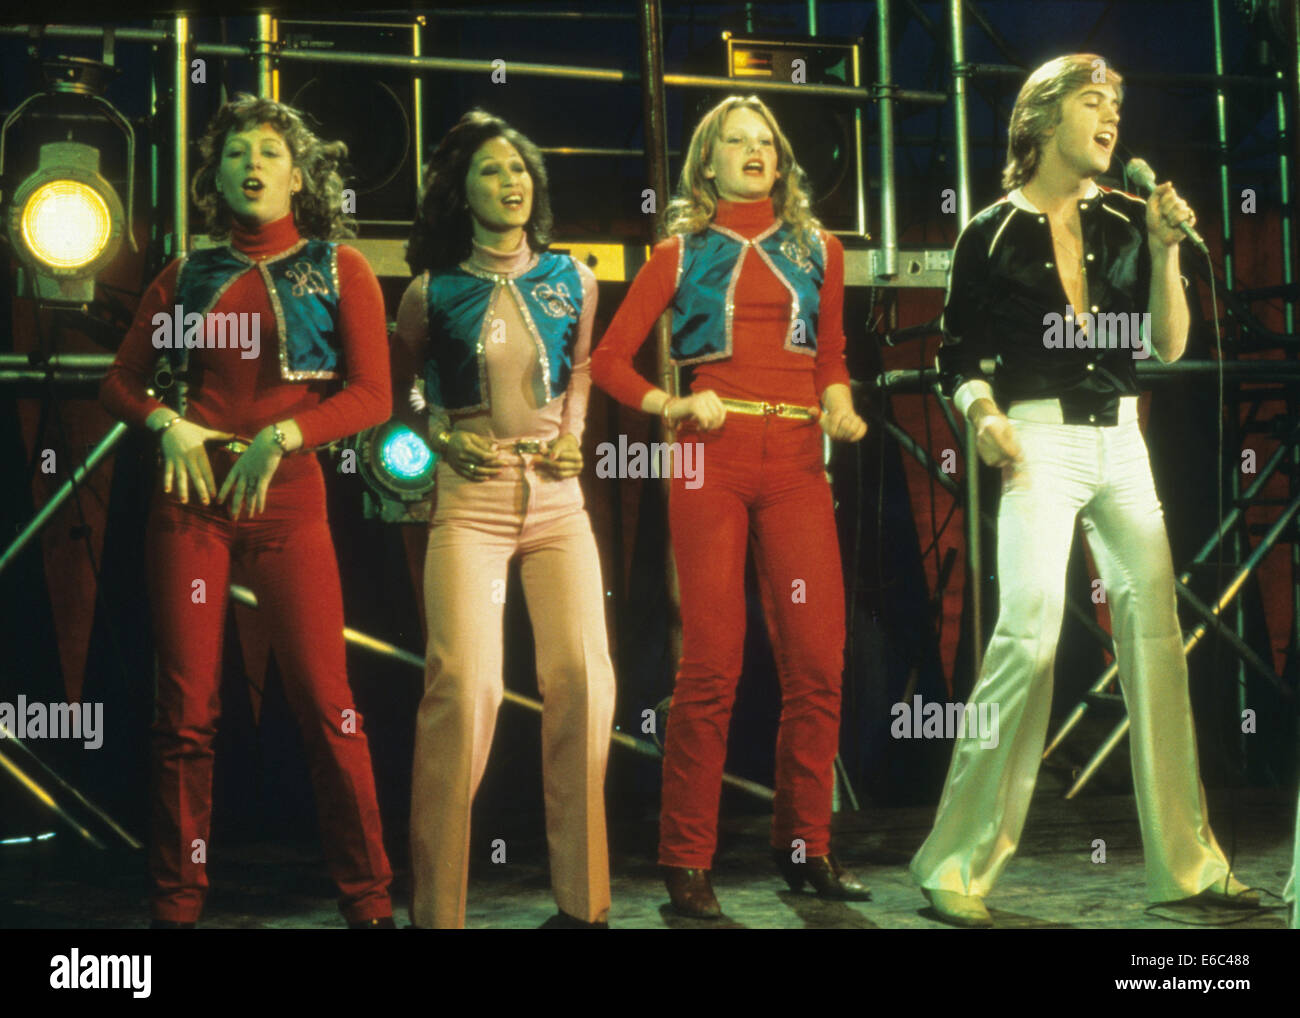 SHAUN CASSIDY US singer about 1976 - Stock Image